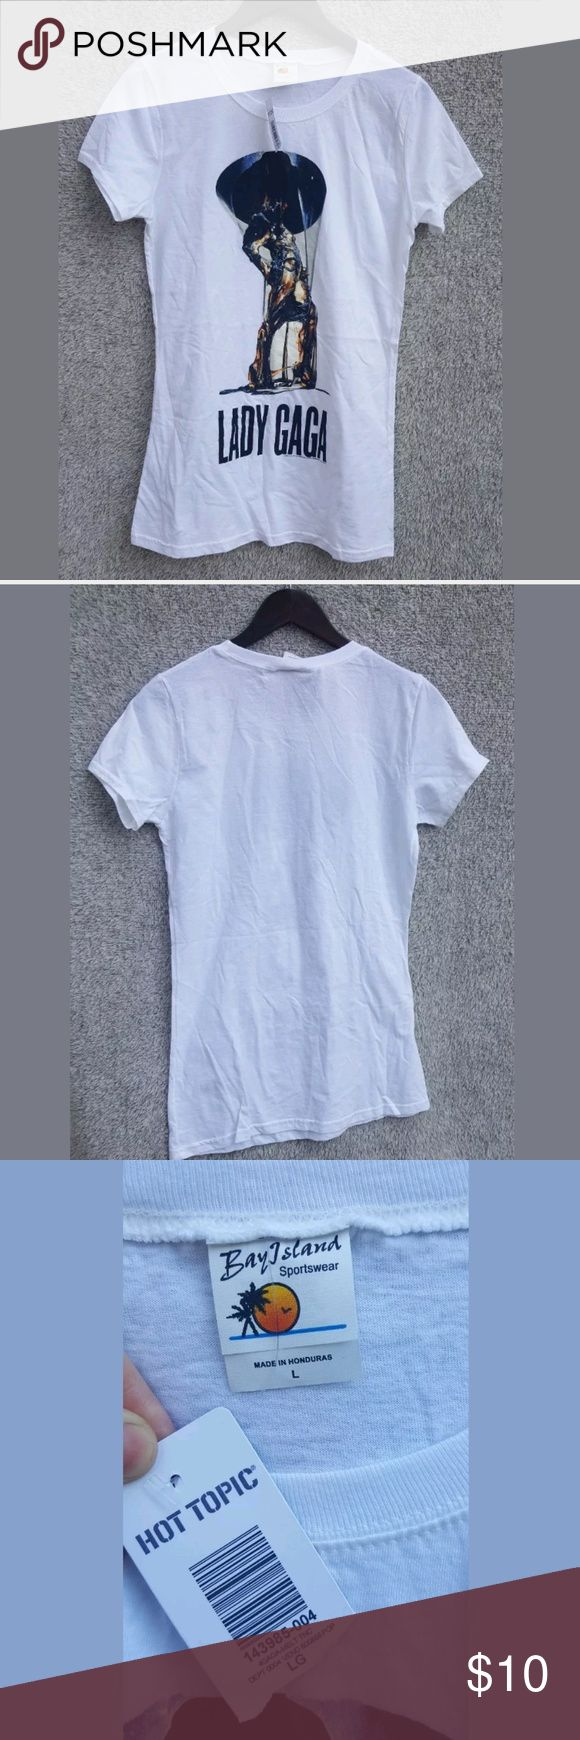 NWT Lady Gaga long T-shirt large Brand new fitted large Lady Gaga t-shirt no rips or stains Hot Topic Tops Tees - Short Sleeve